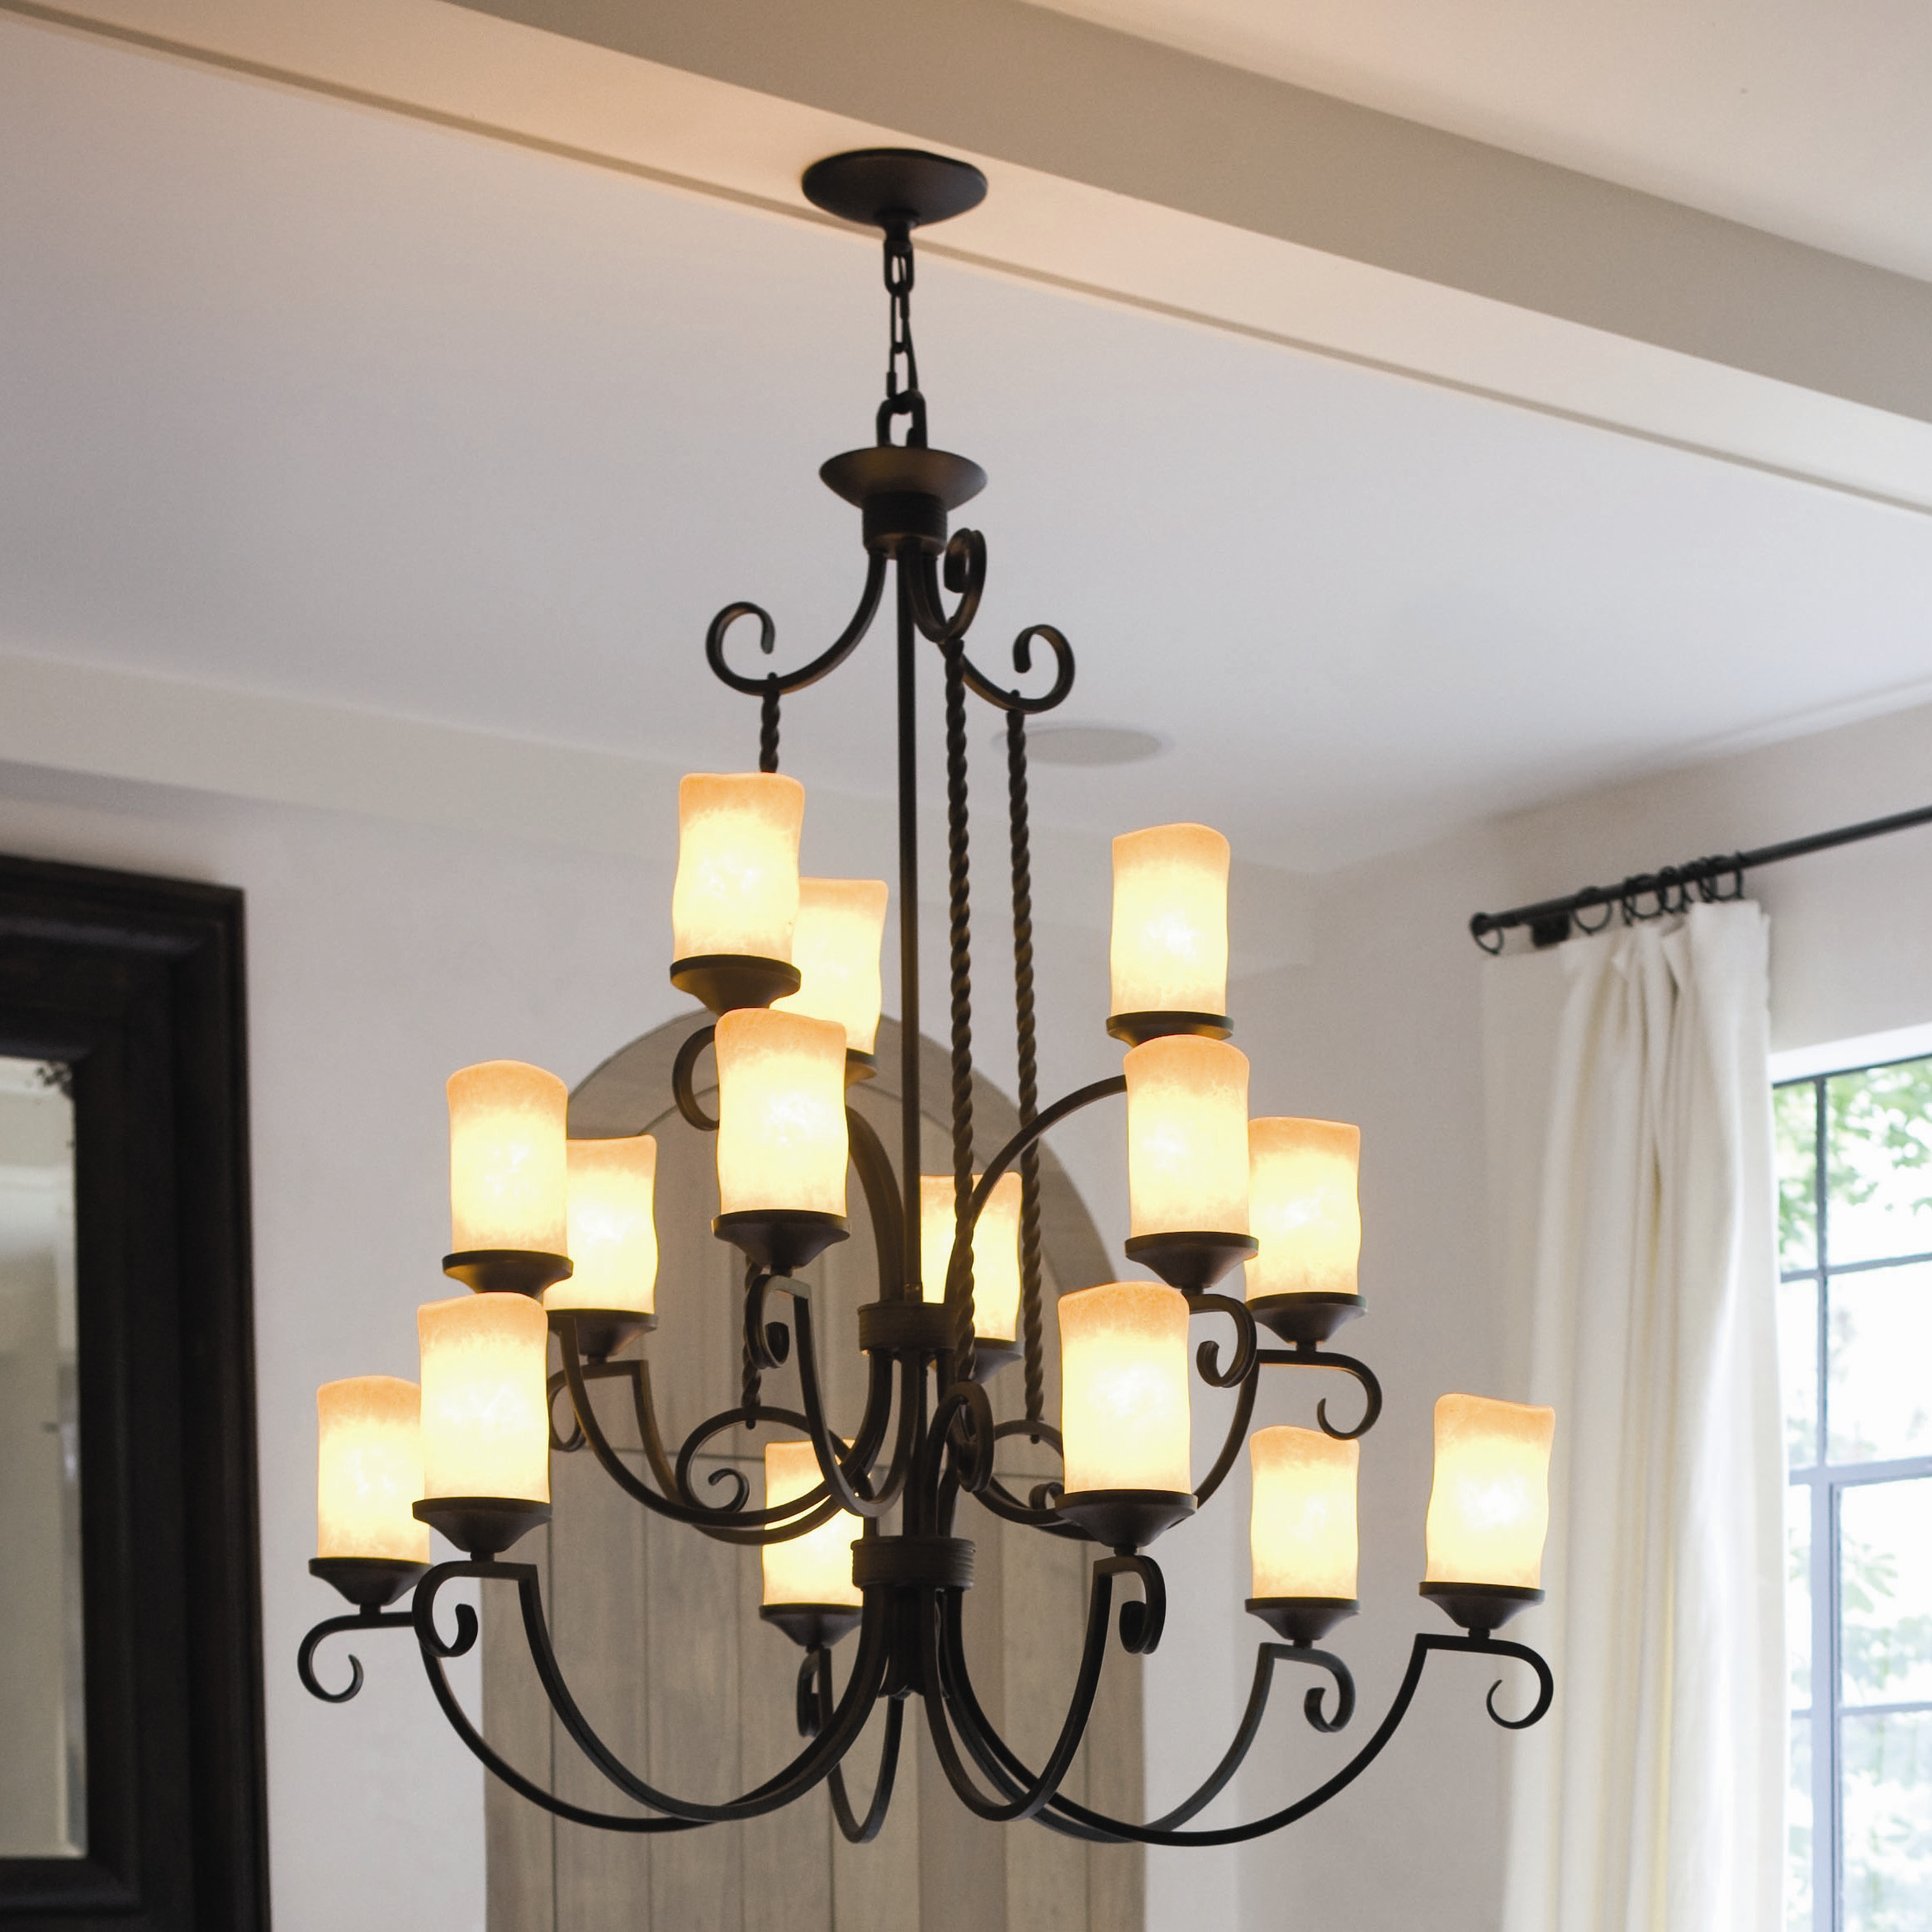 Fifteen Light Olde Black Candle Chandelier by Hinkley Lighting - Casa Collection